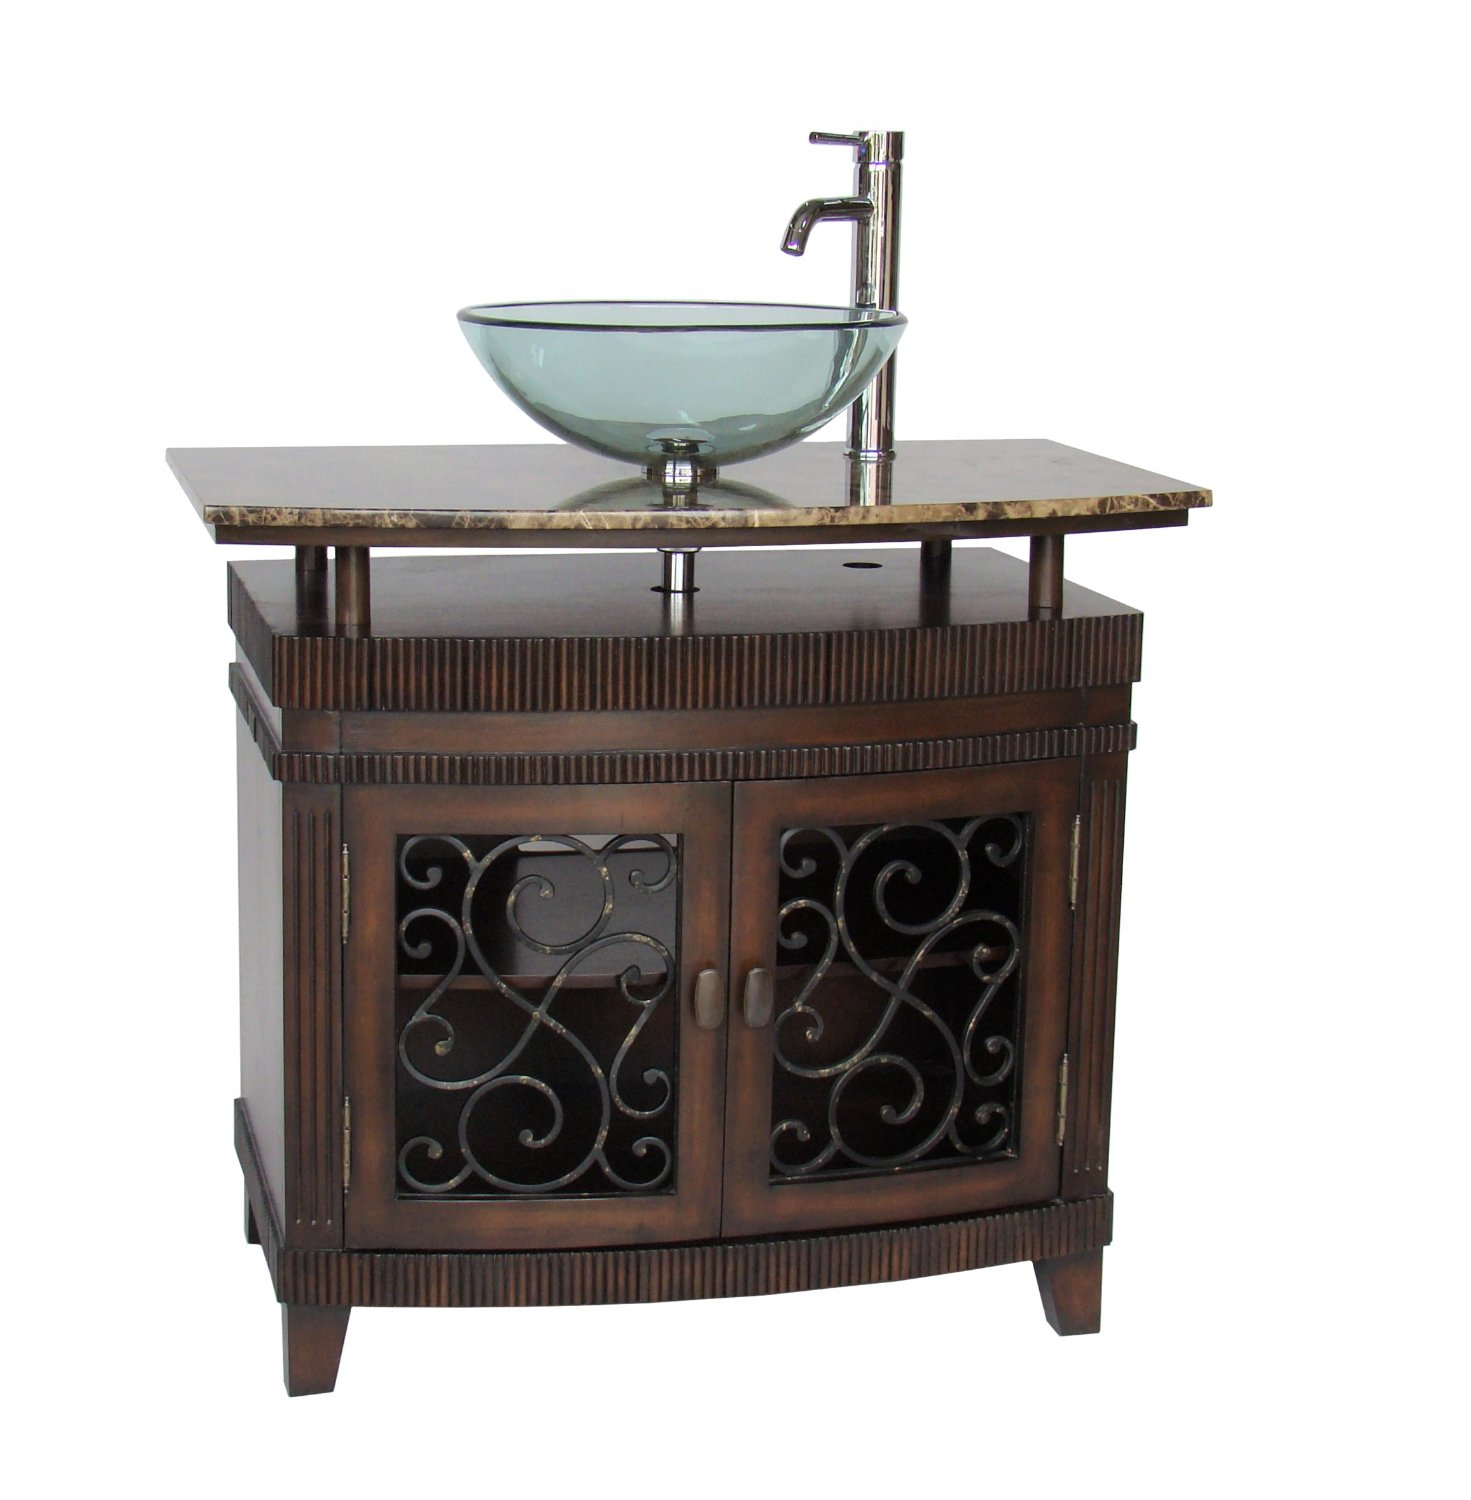 36 inch Adelina Vessel Sink Bathroom Vanity Mahogany Finish